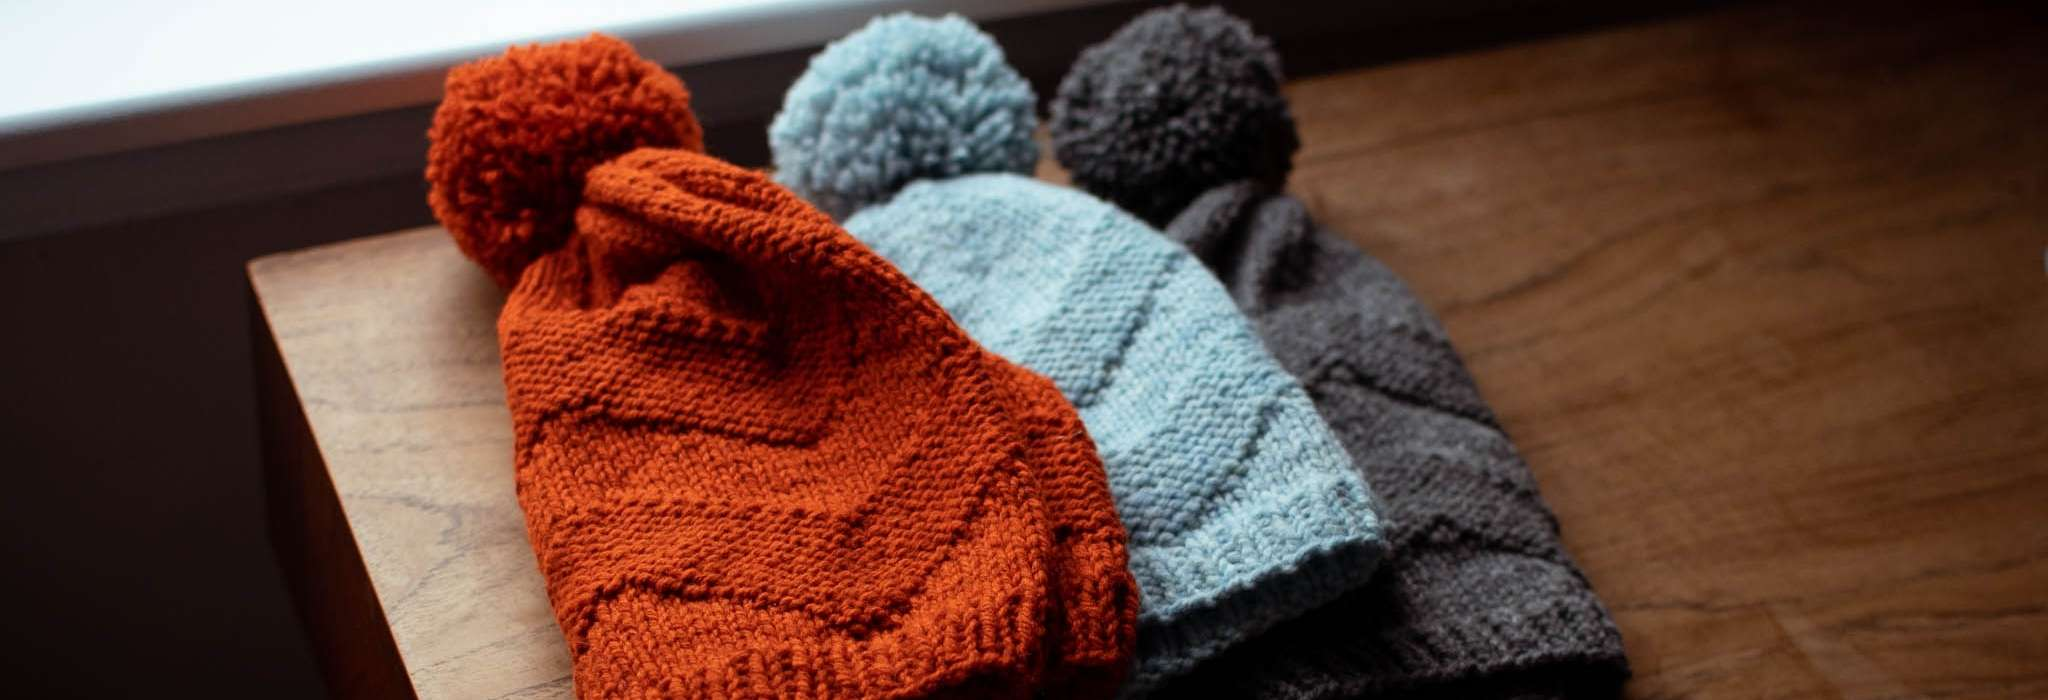 Three beanie hats in orange, blue and grey lie overlapping each other on a wooden table. They have pom poms and a chevron stitch pattern.